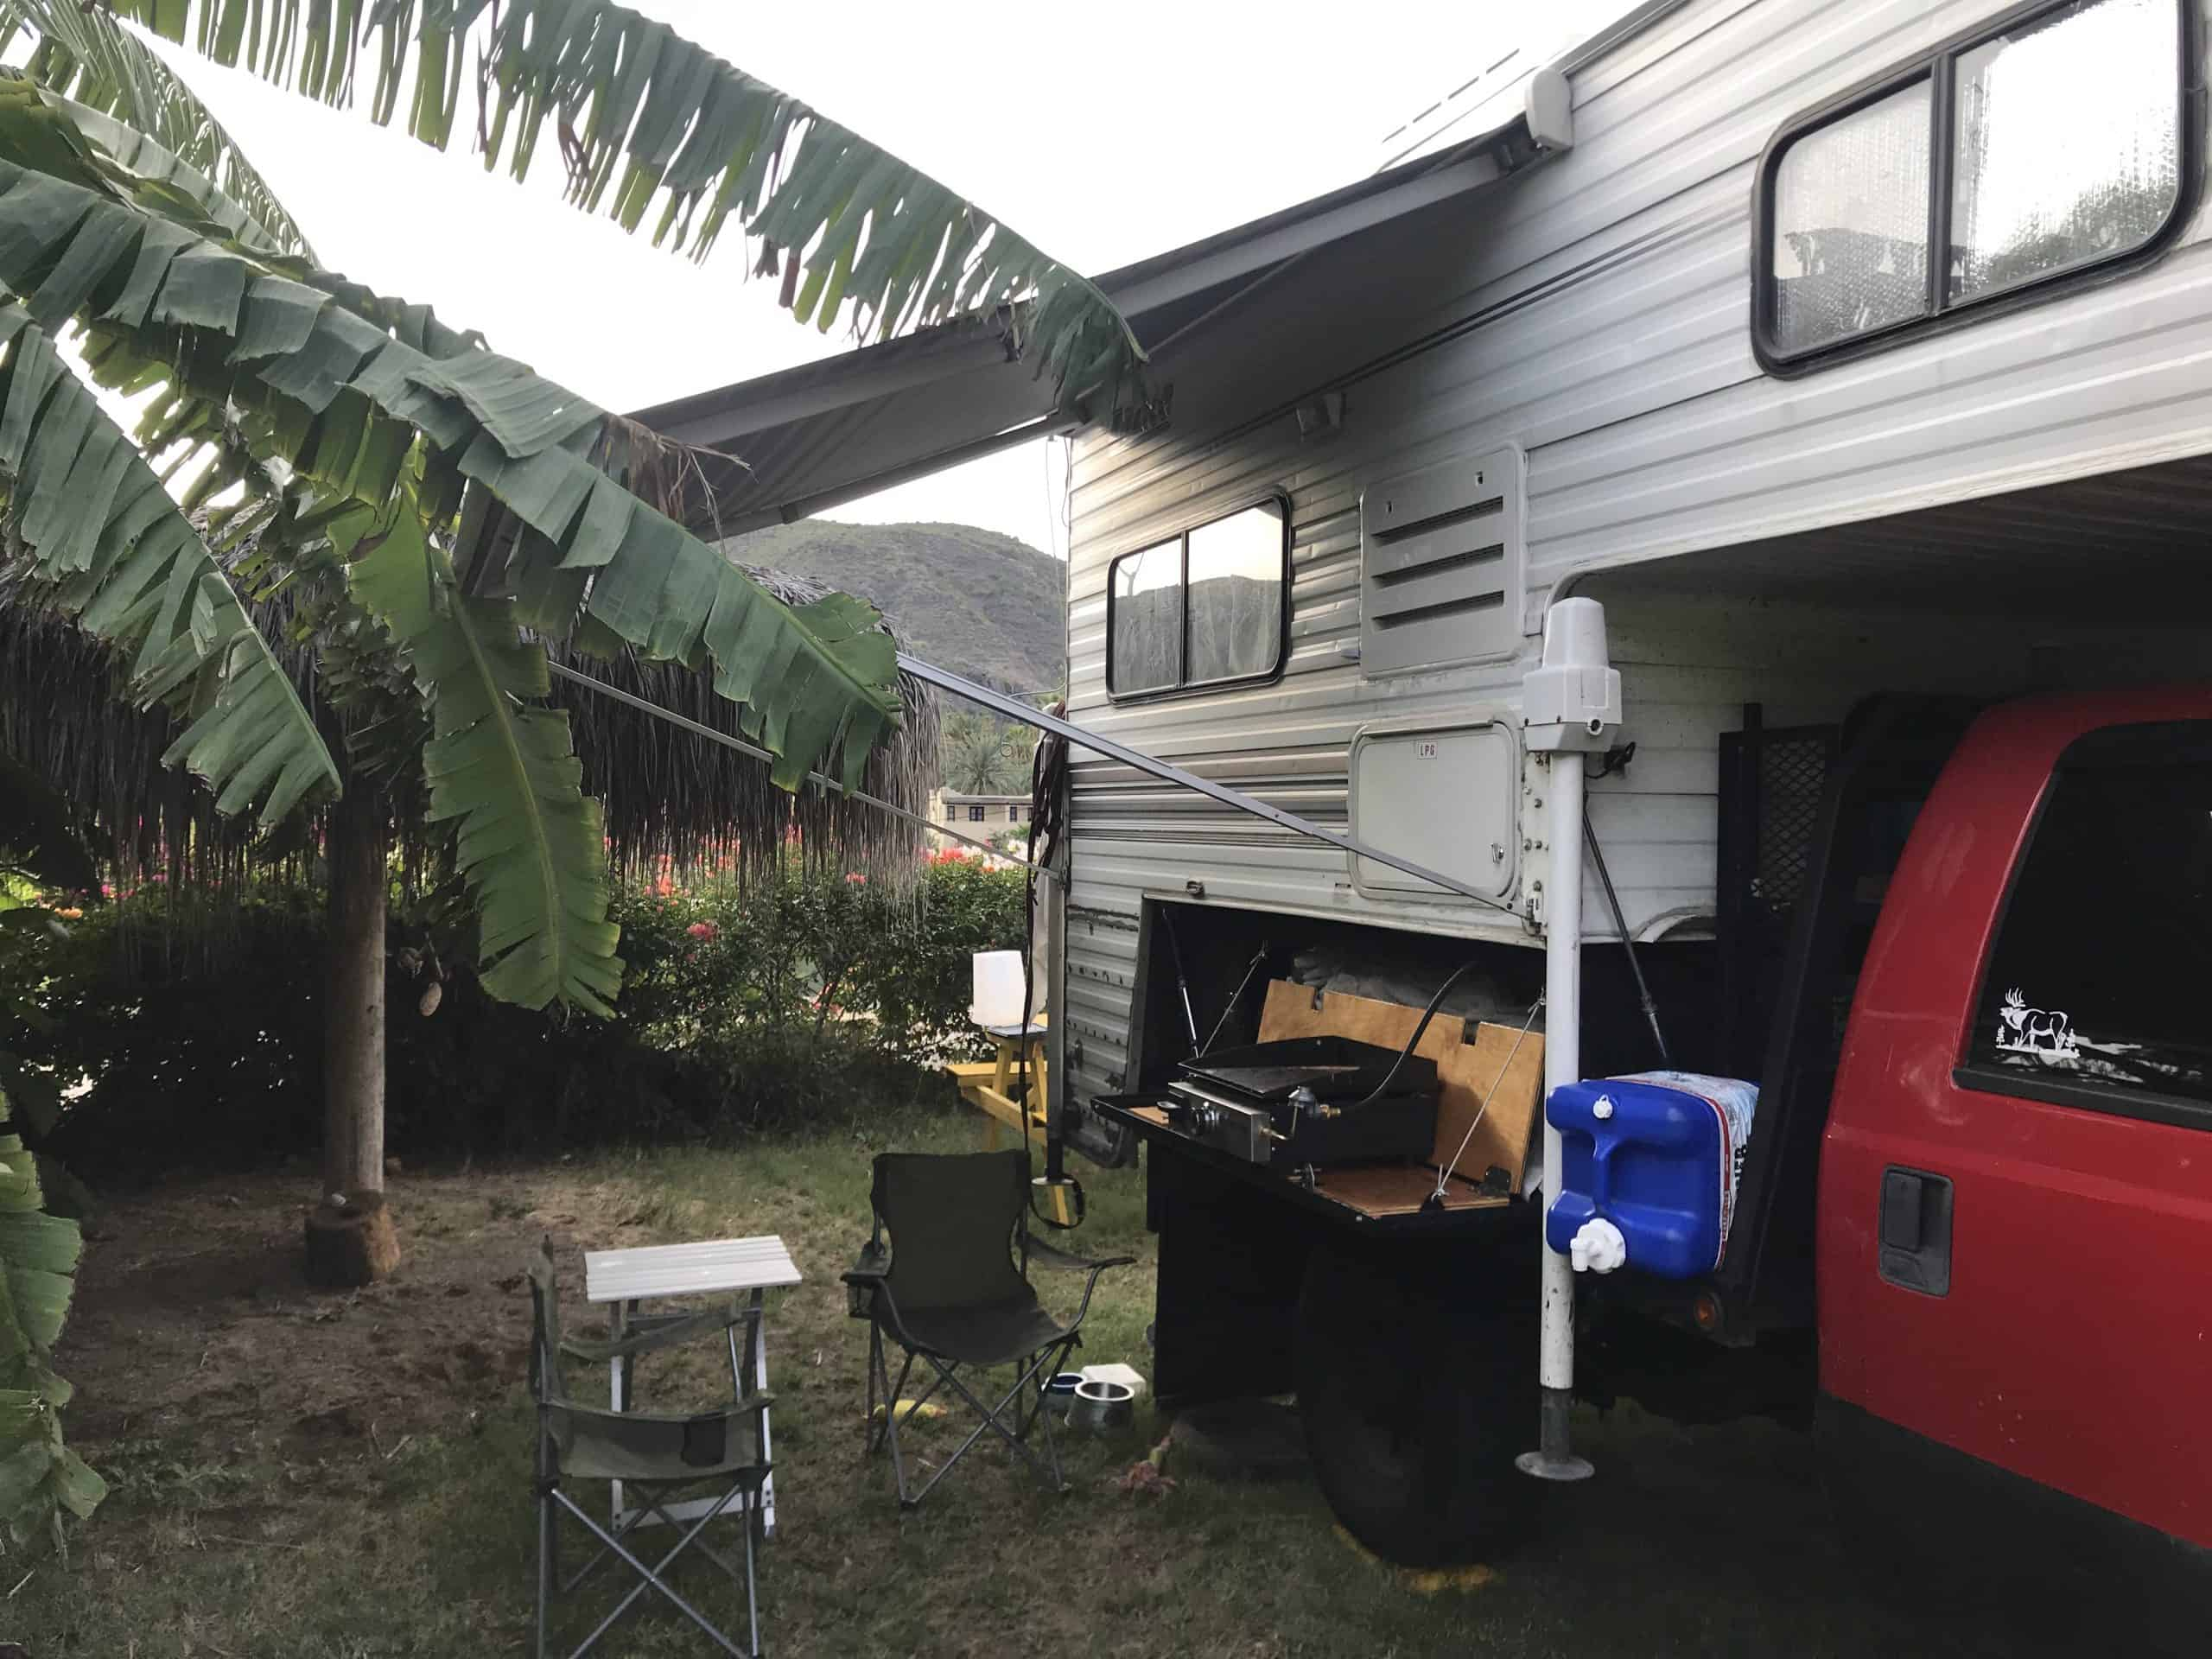 truck camper with chairs, table and grill set up outside